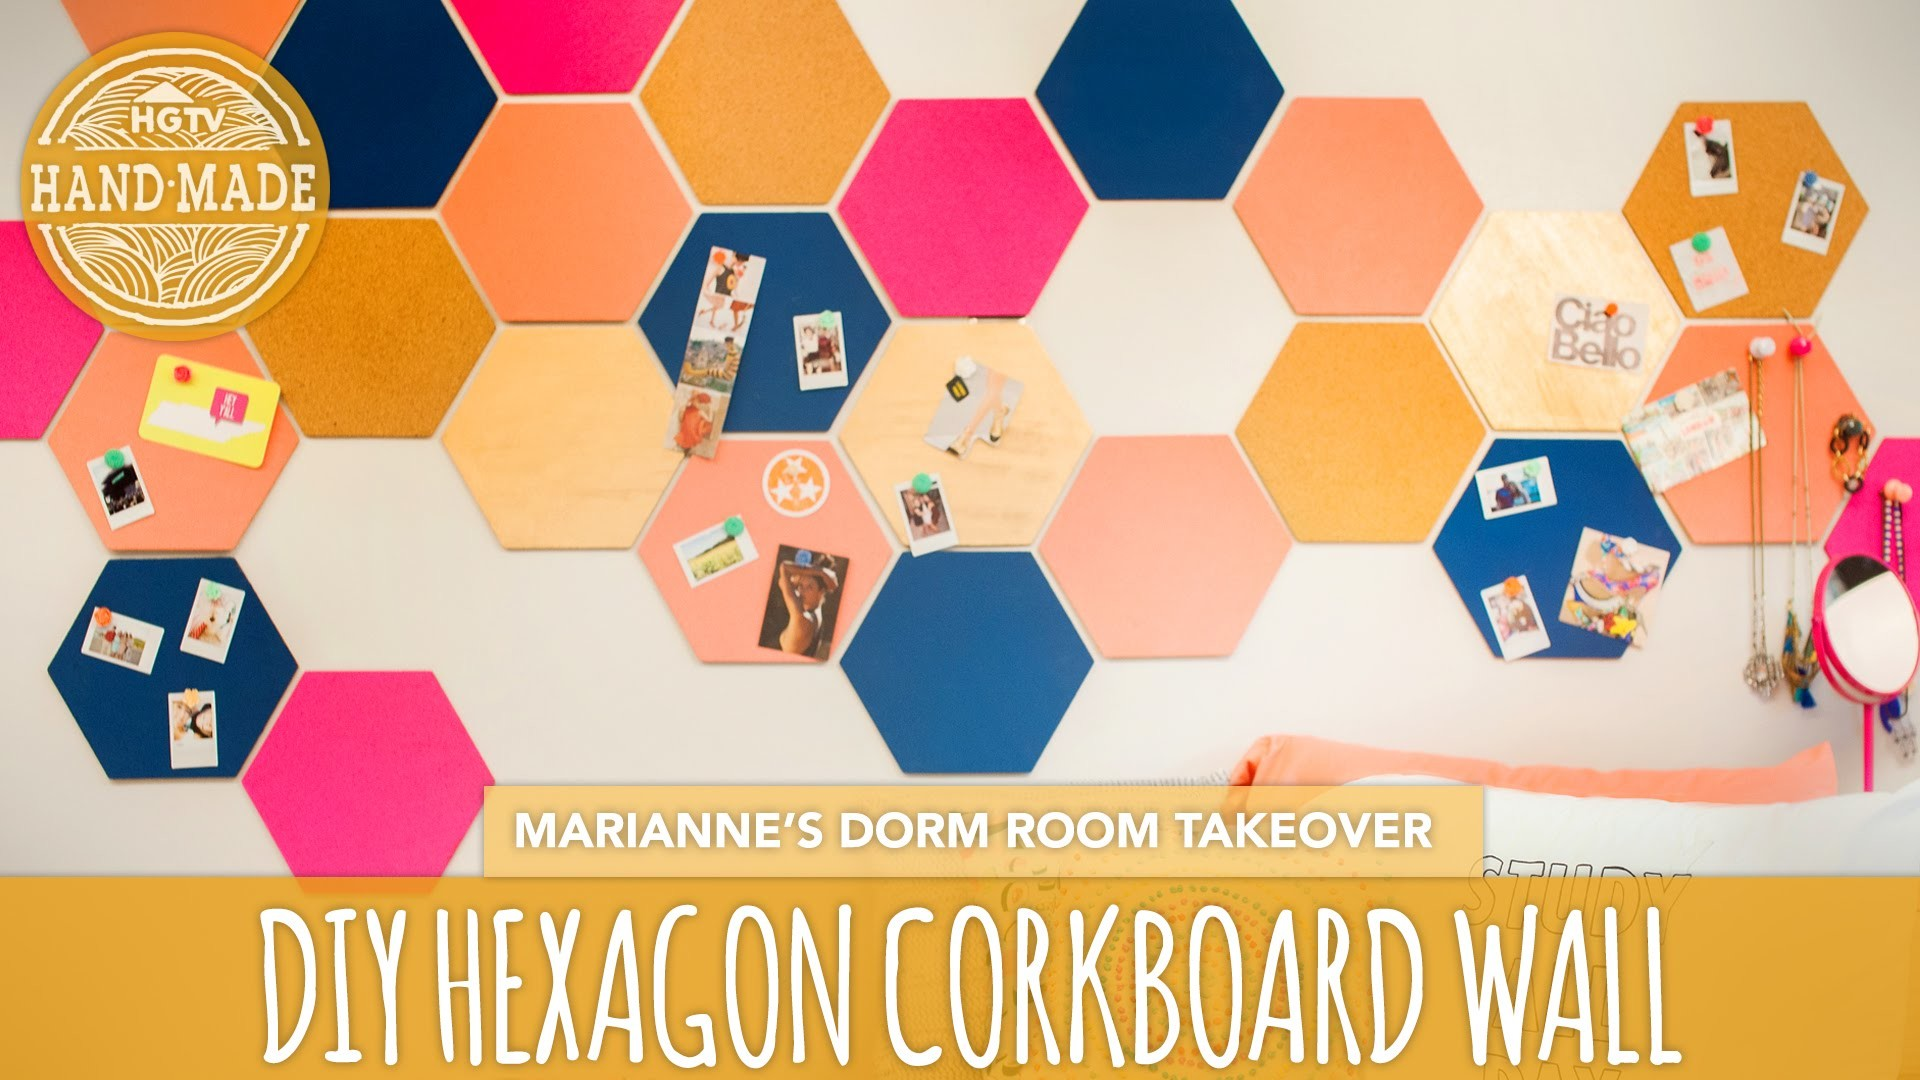 Back To School DIY: Hexagon Corkboard Dorm Decor - HGTV Handmade Dorm Room Takeover